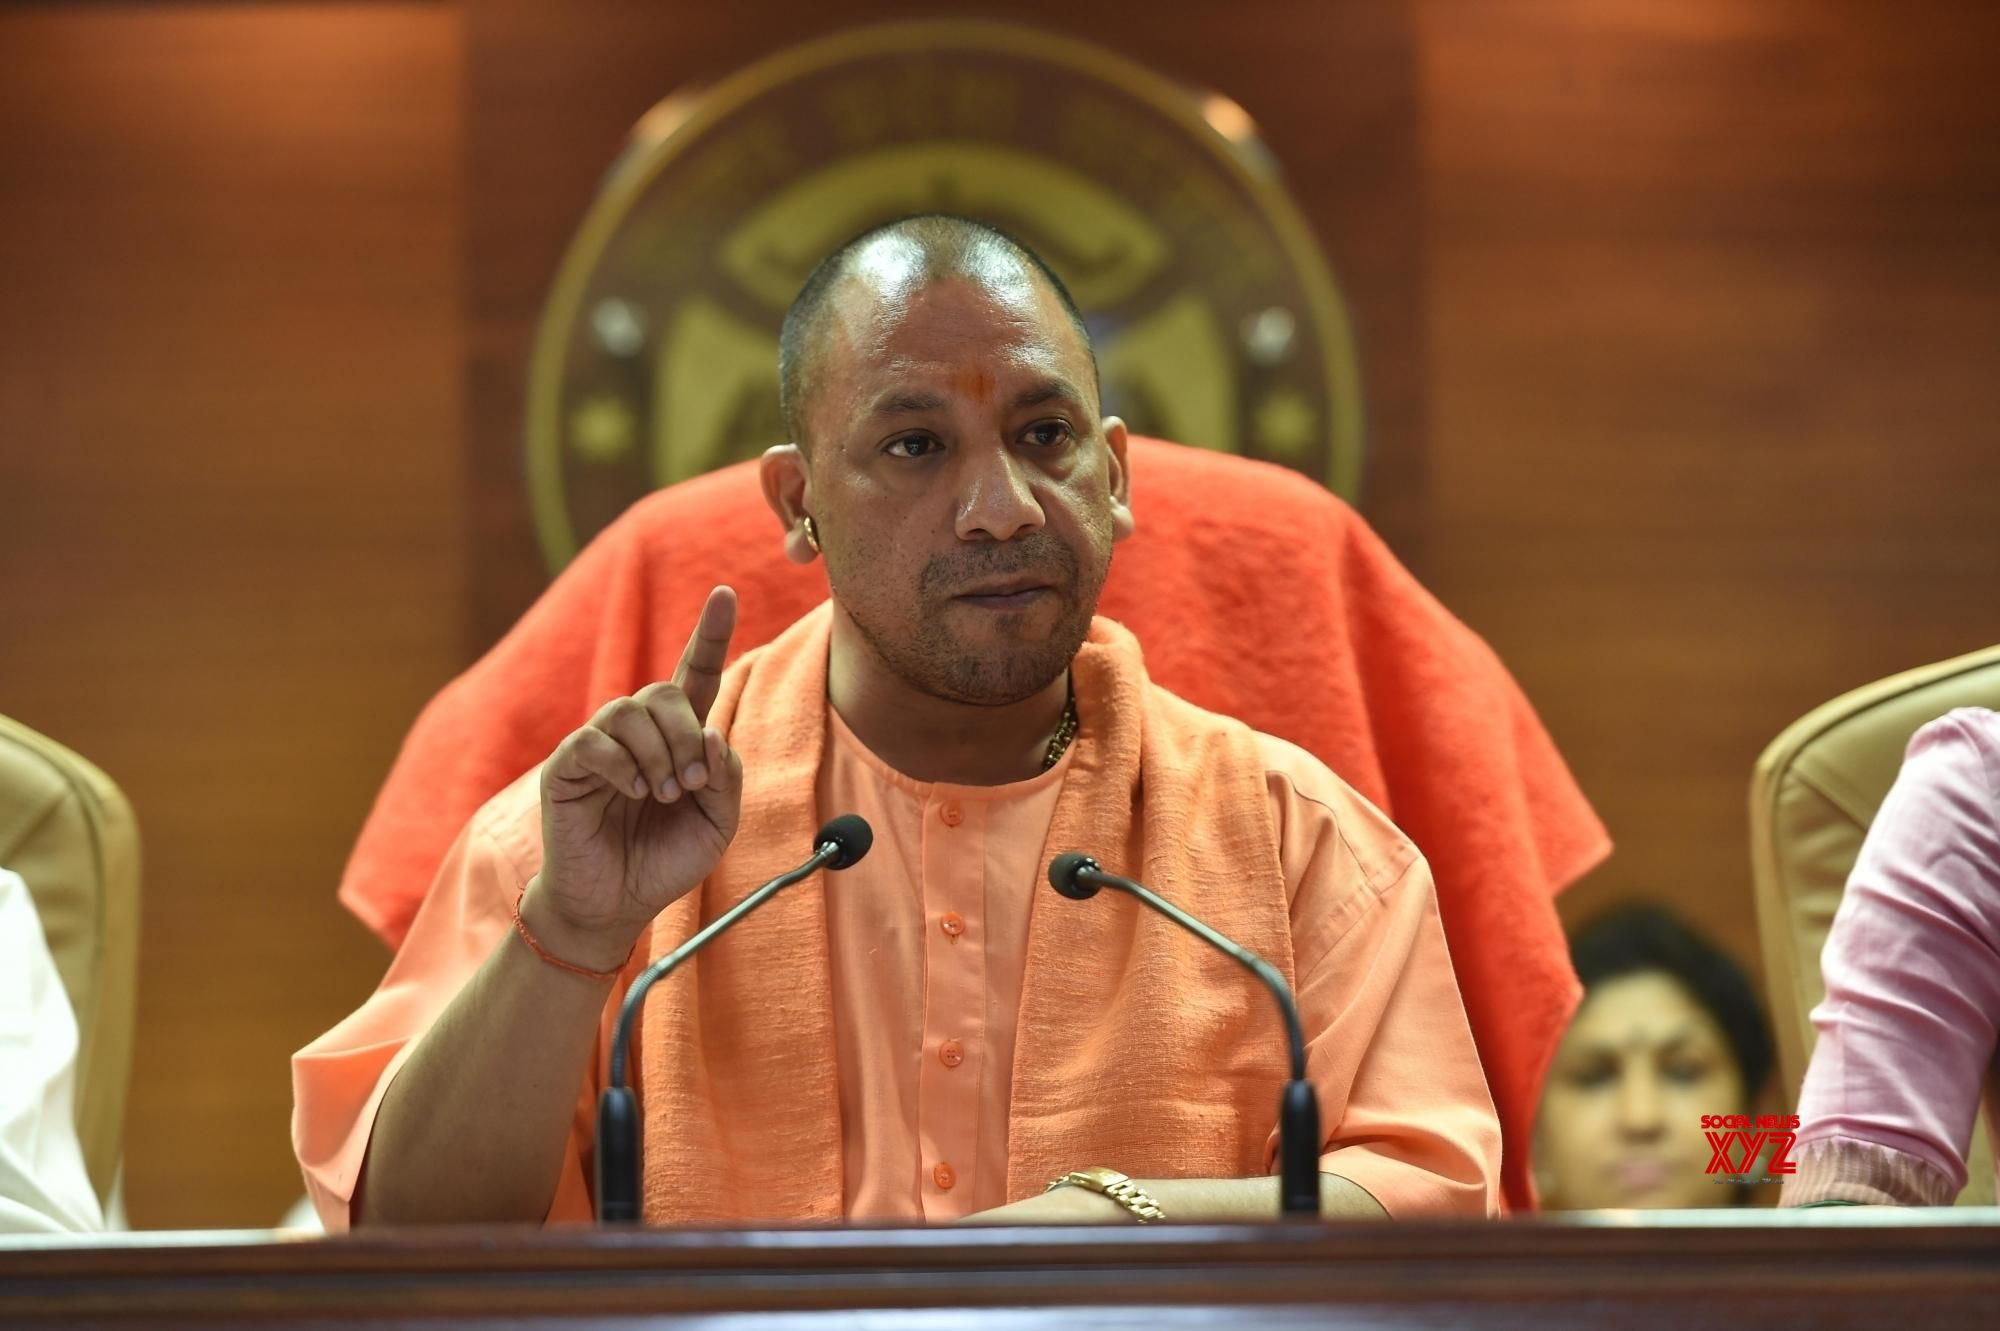 Hospital deaths: Adityanath rules out oxygen lack as cause, assures stern action